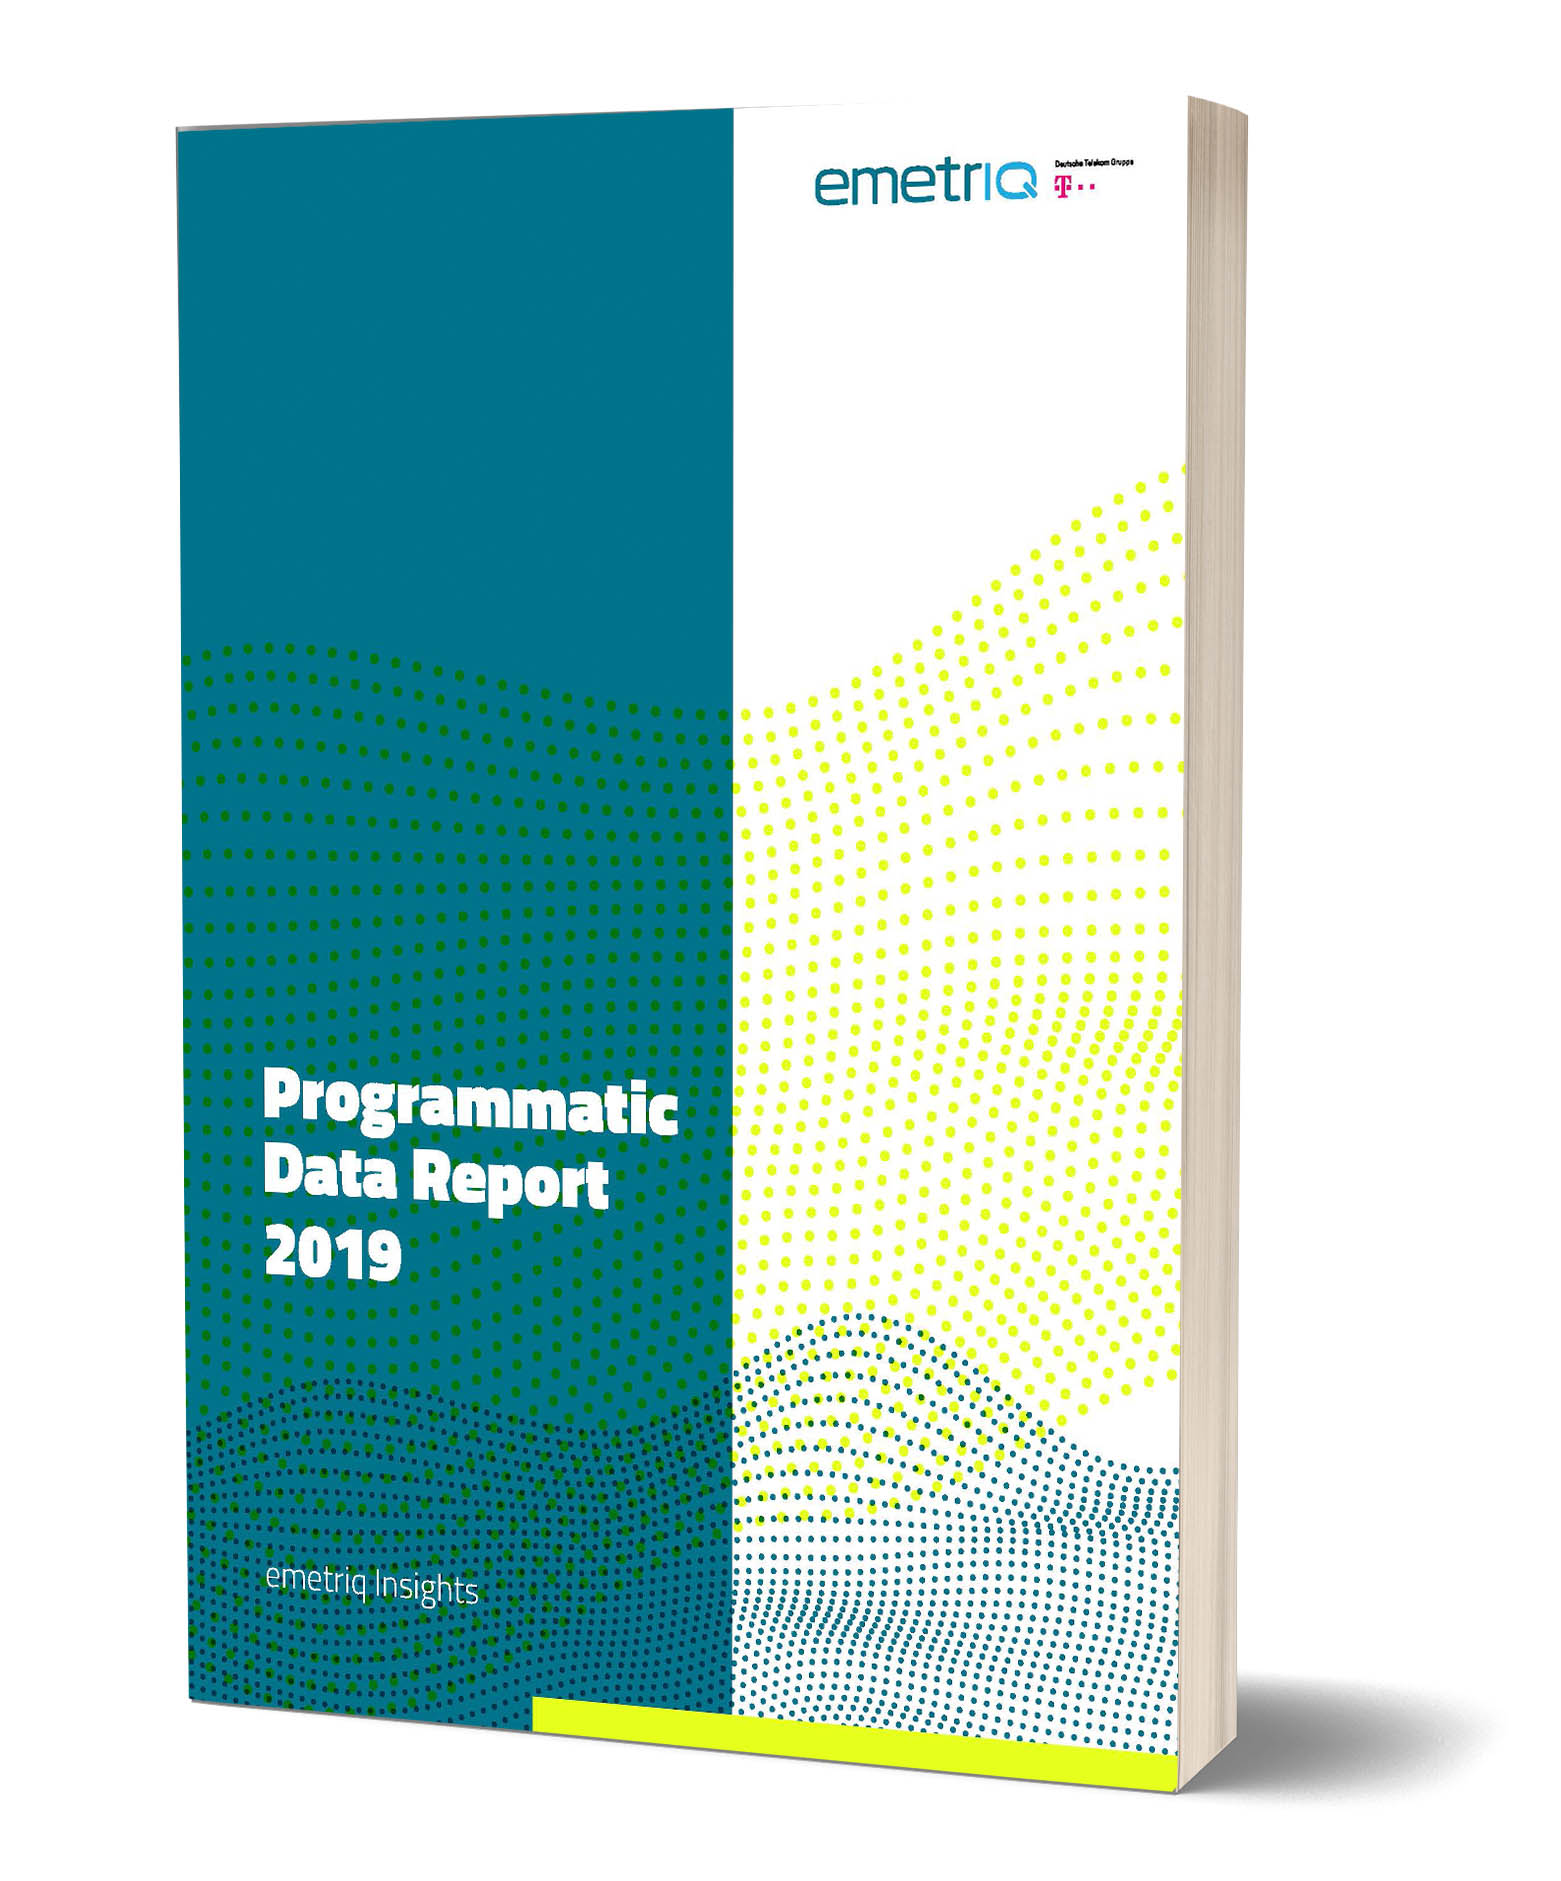 Programmatic Data Report 2019 - emetriq